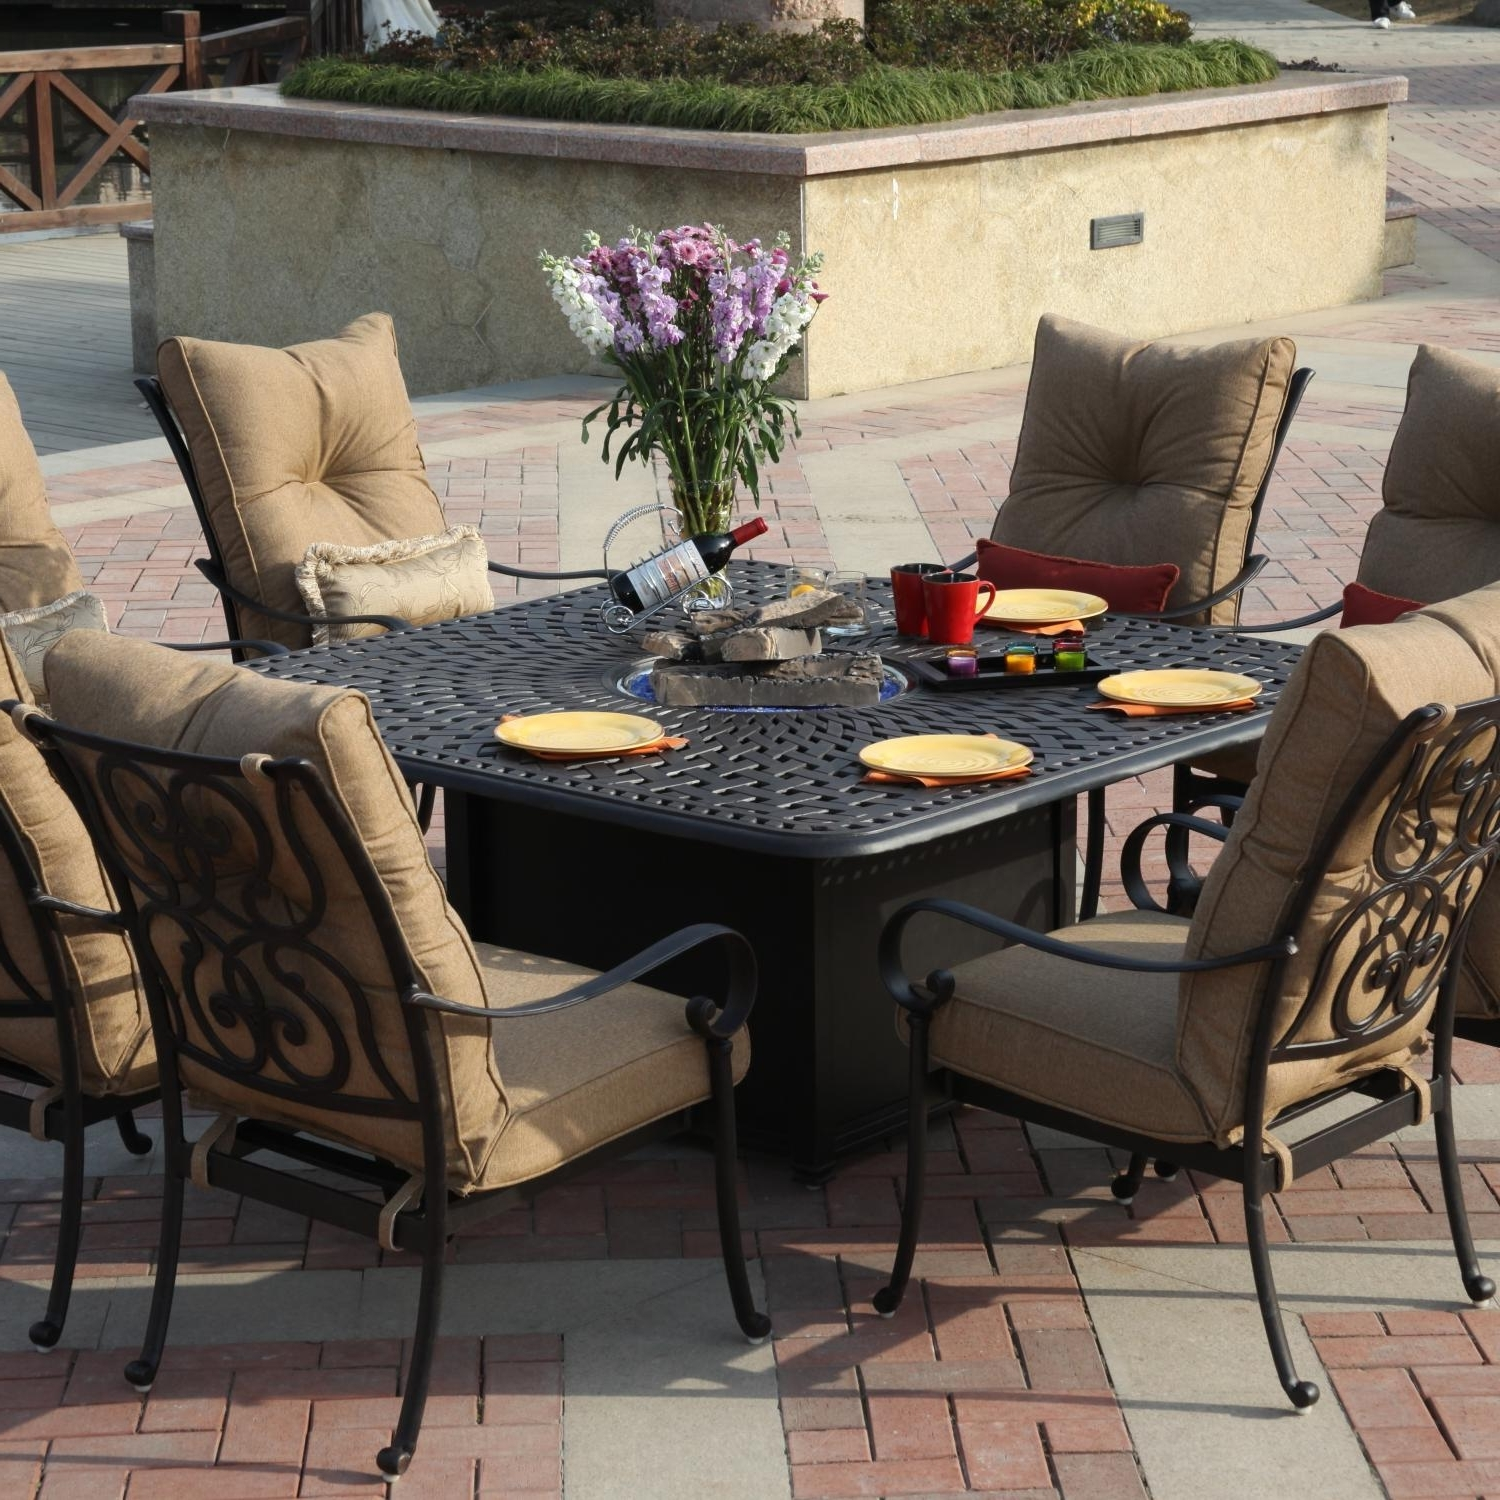 New Fire Pit Set Propane Conversation Sets Fire Pit Chat Set For Most Current Patio Conversation Sets With Fire Table (View 11 of 20)